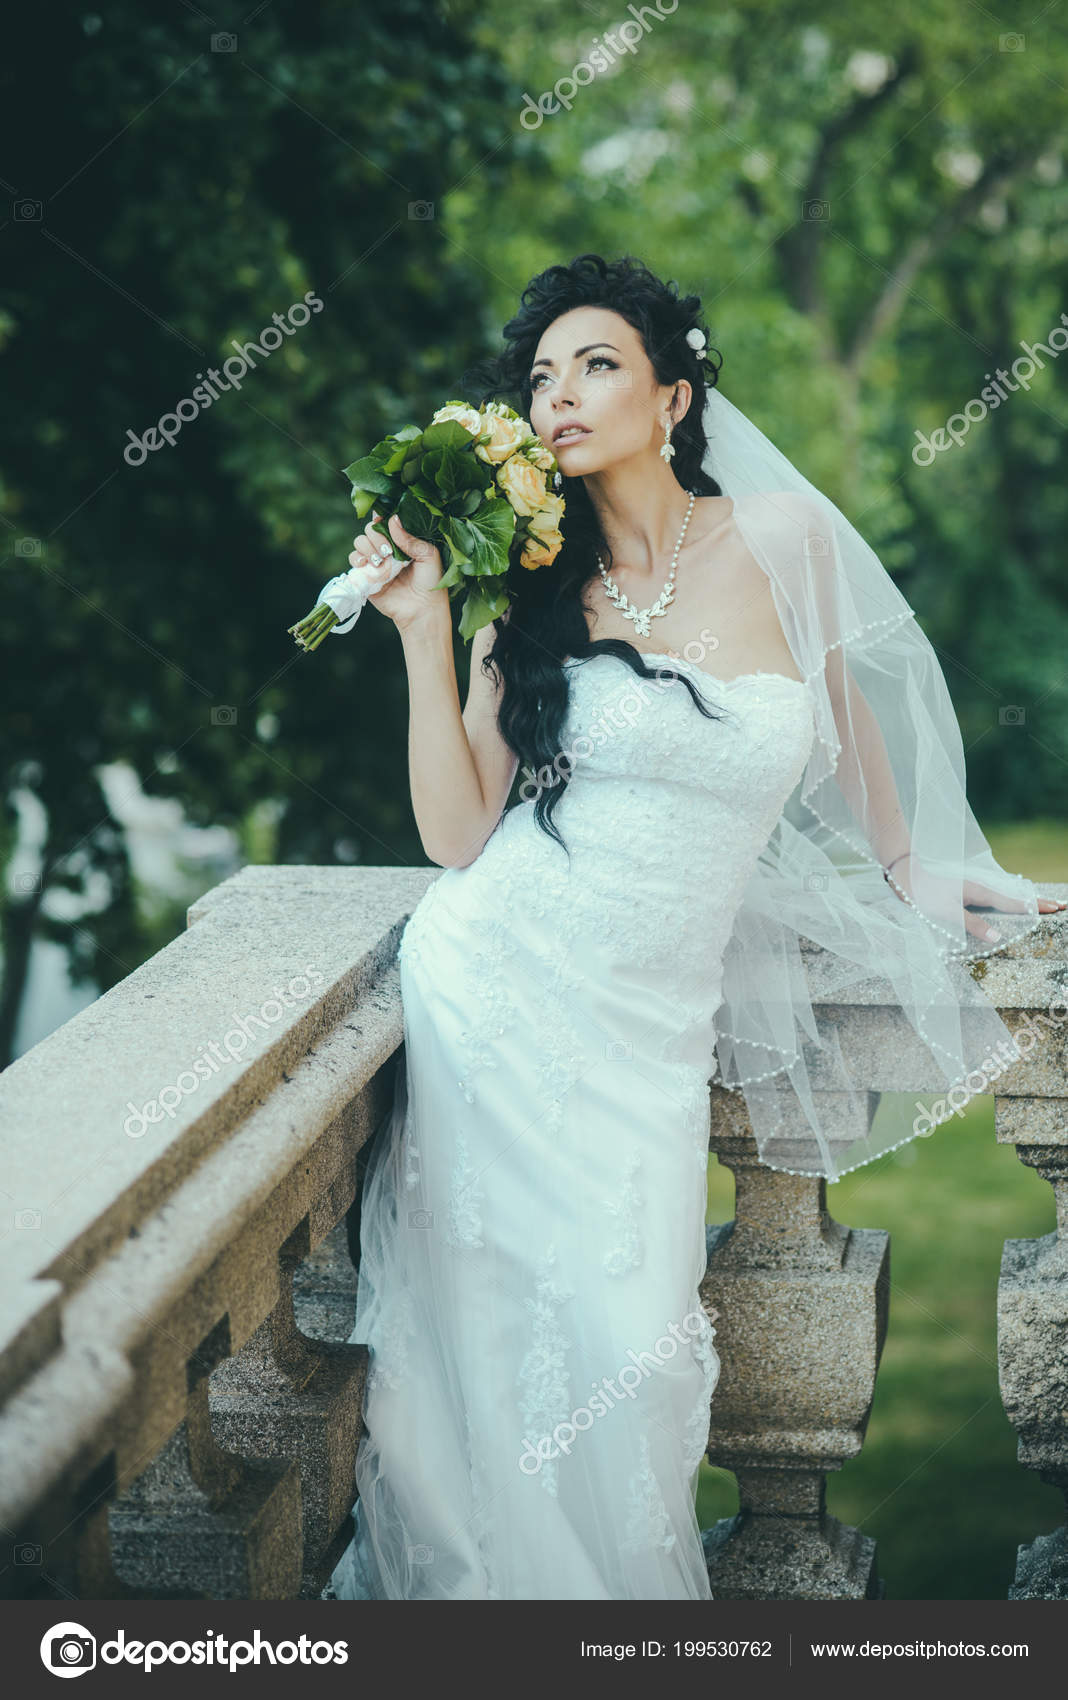 Bride In Fashion White Dress And Veil Sensual Woman With Wedding